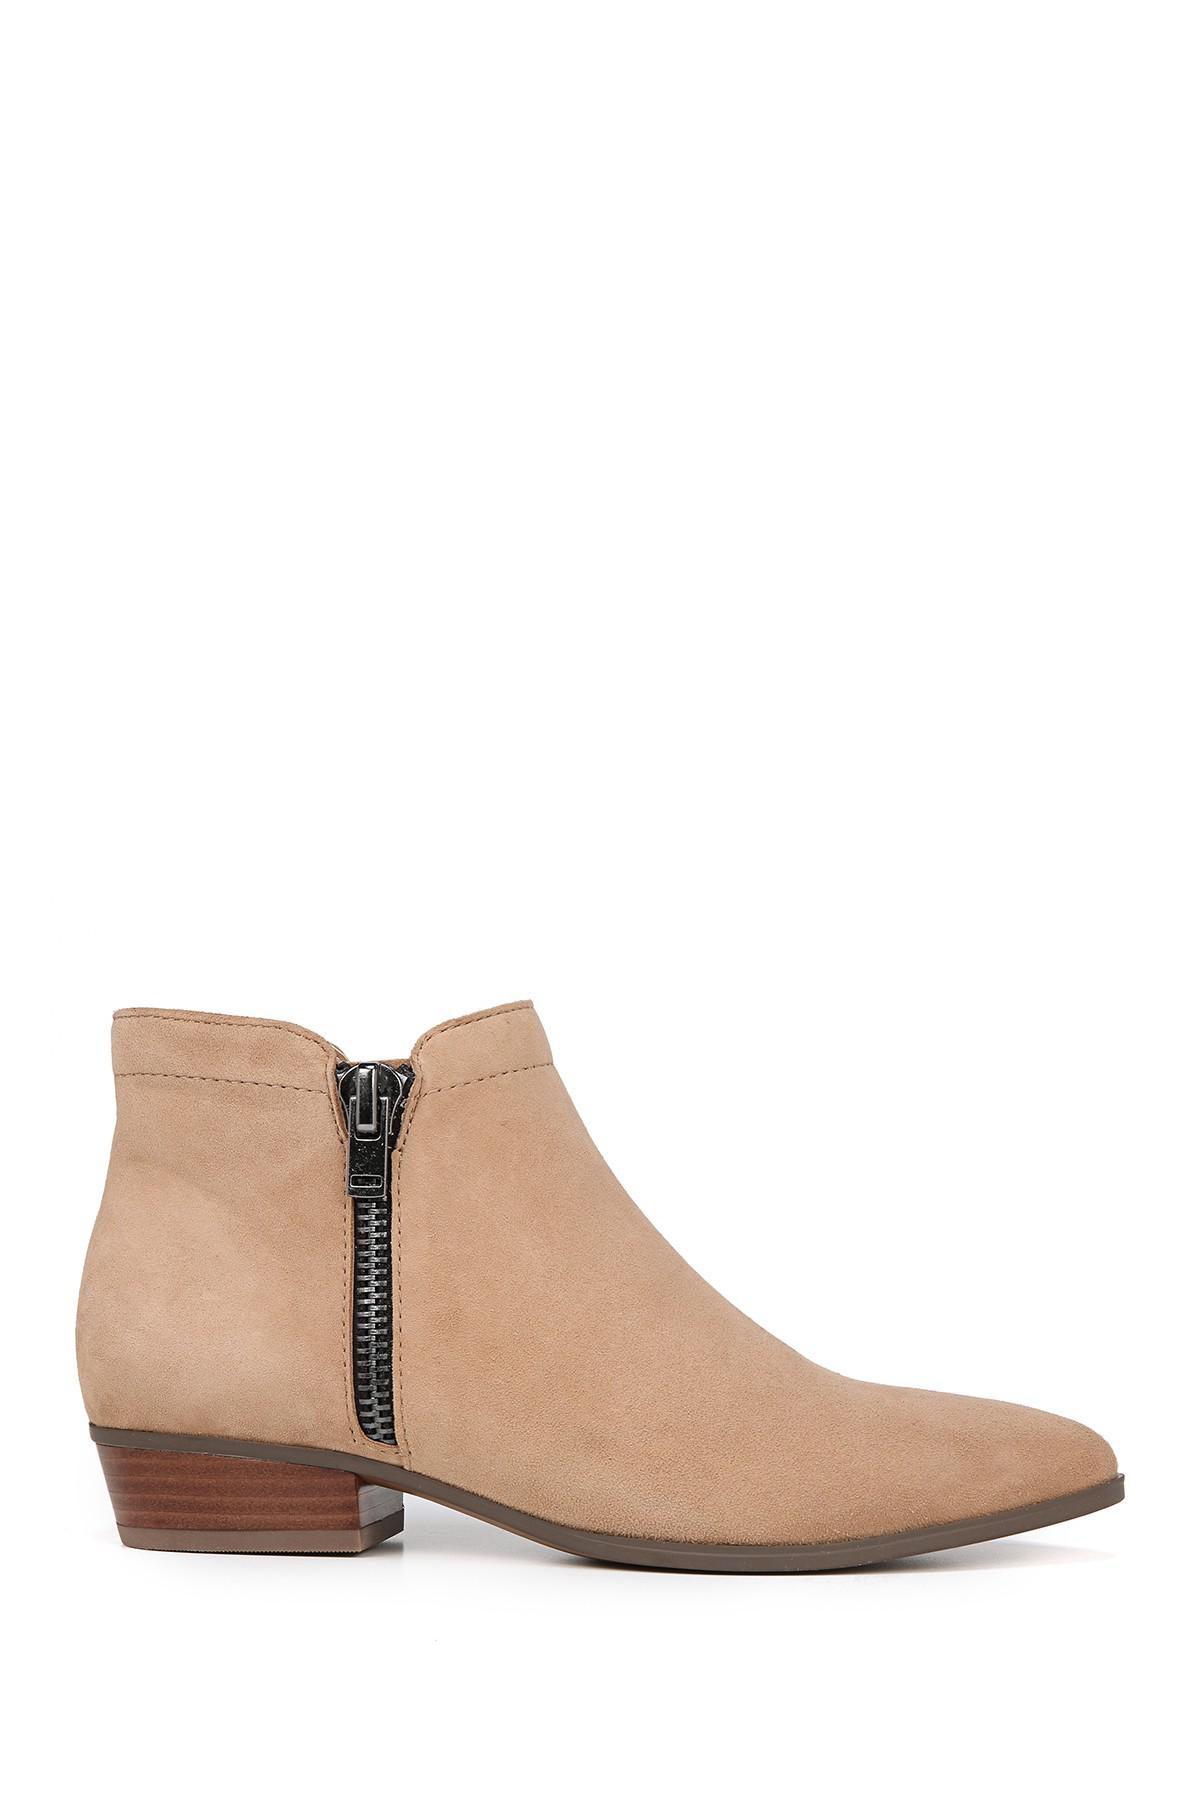 e5a48a58563 Lyst - Naturalizer Blair Zip Ankle Bootie - Wide Width Available in ...